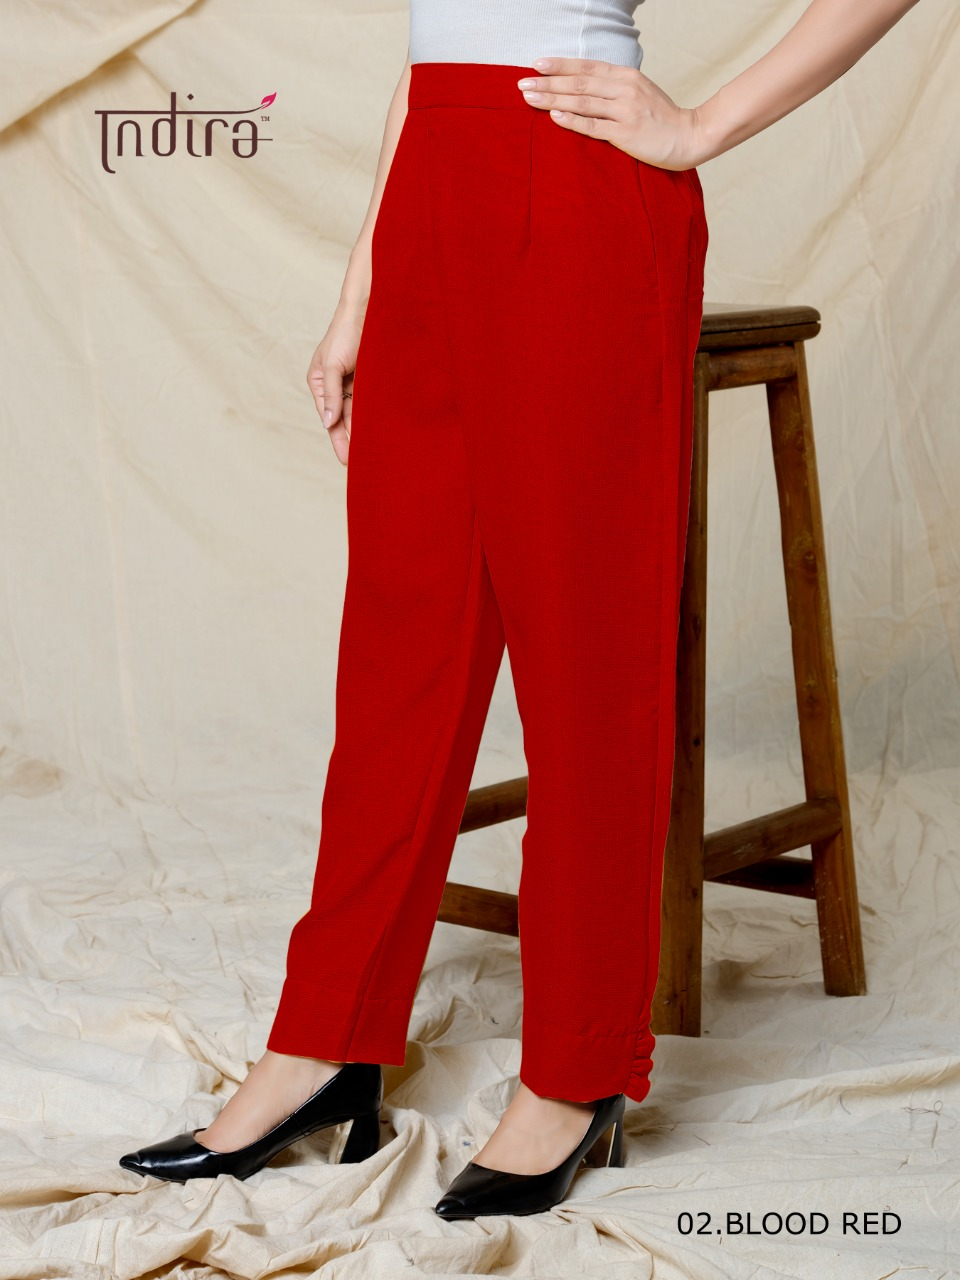 Indira Apparel's Indira Linen Pants Polyester Linen Readymade Pants At Wholesale Rate